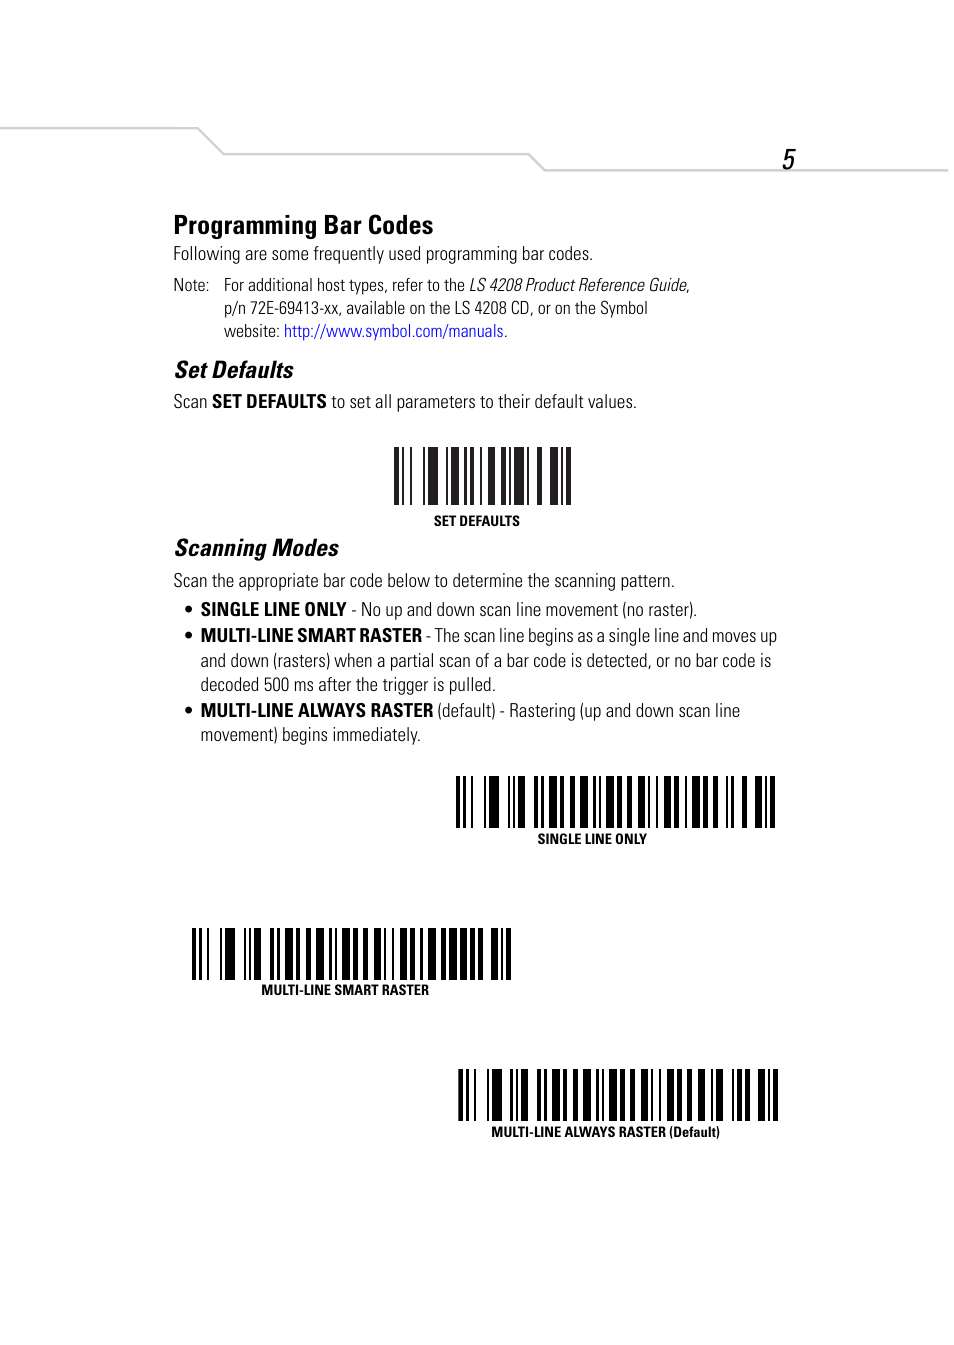 Programming bar codes set defaults scanning modes symbol programming bar codes set defaults scanning modes symbol technologies ls 4208 user manual page 7 16 biocorpaavc